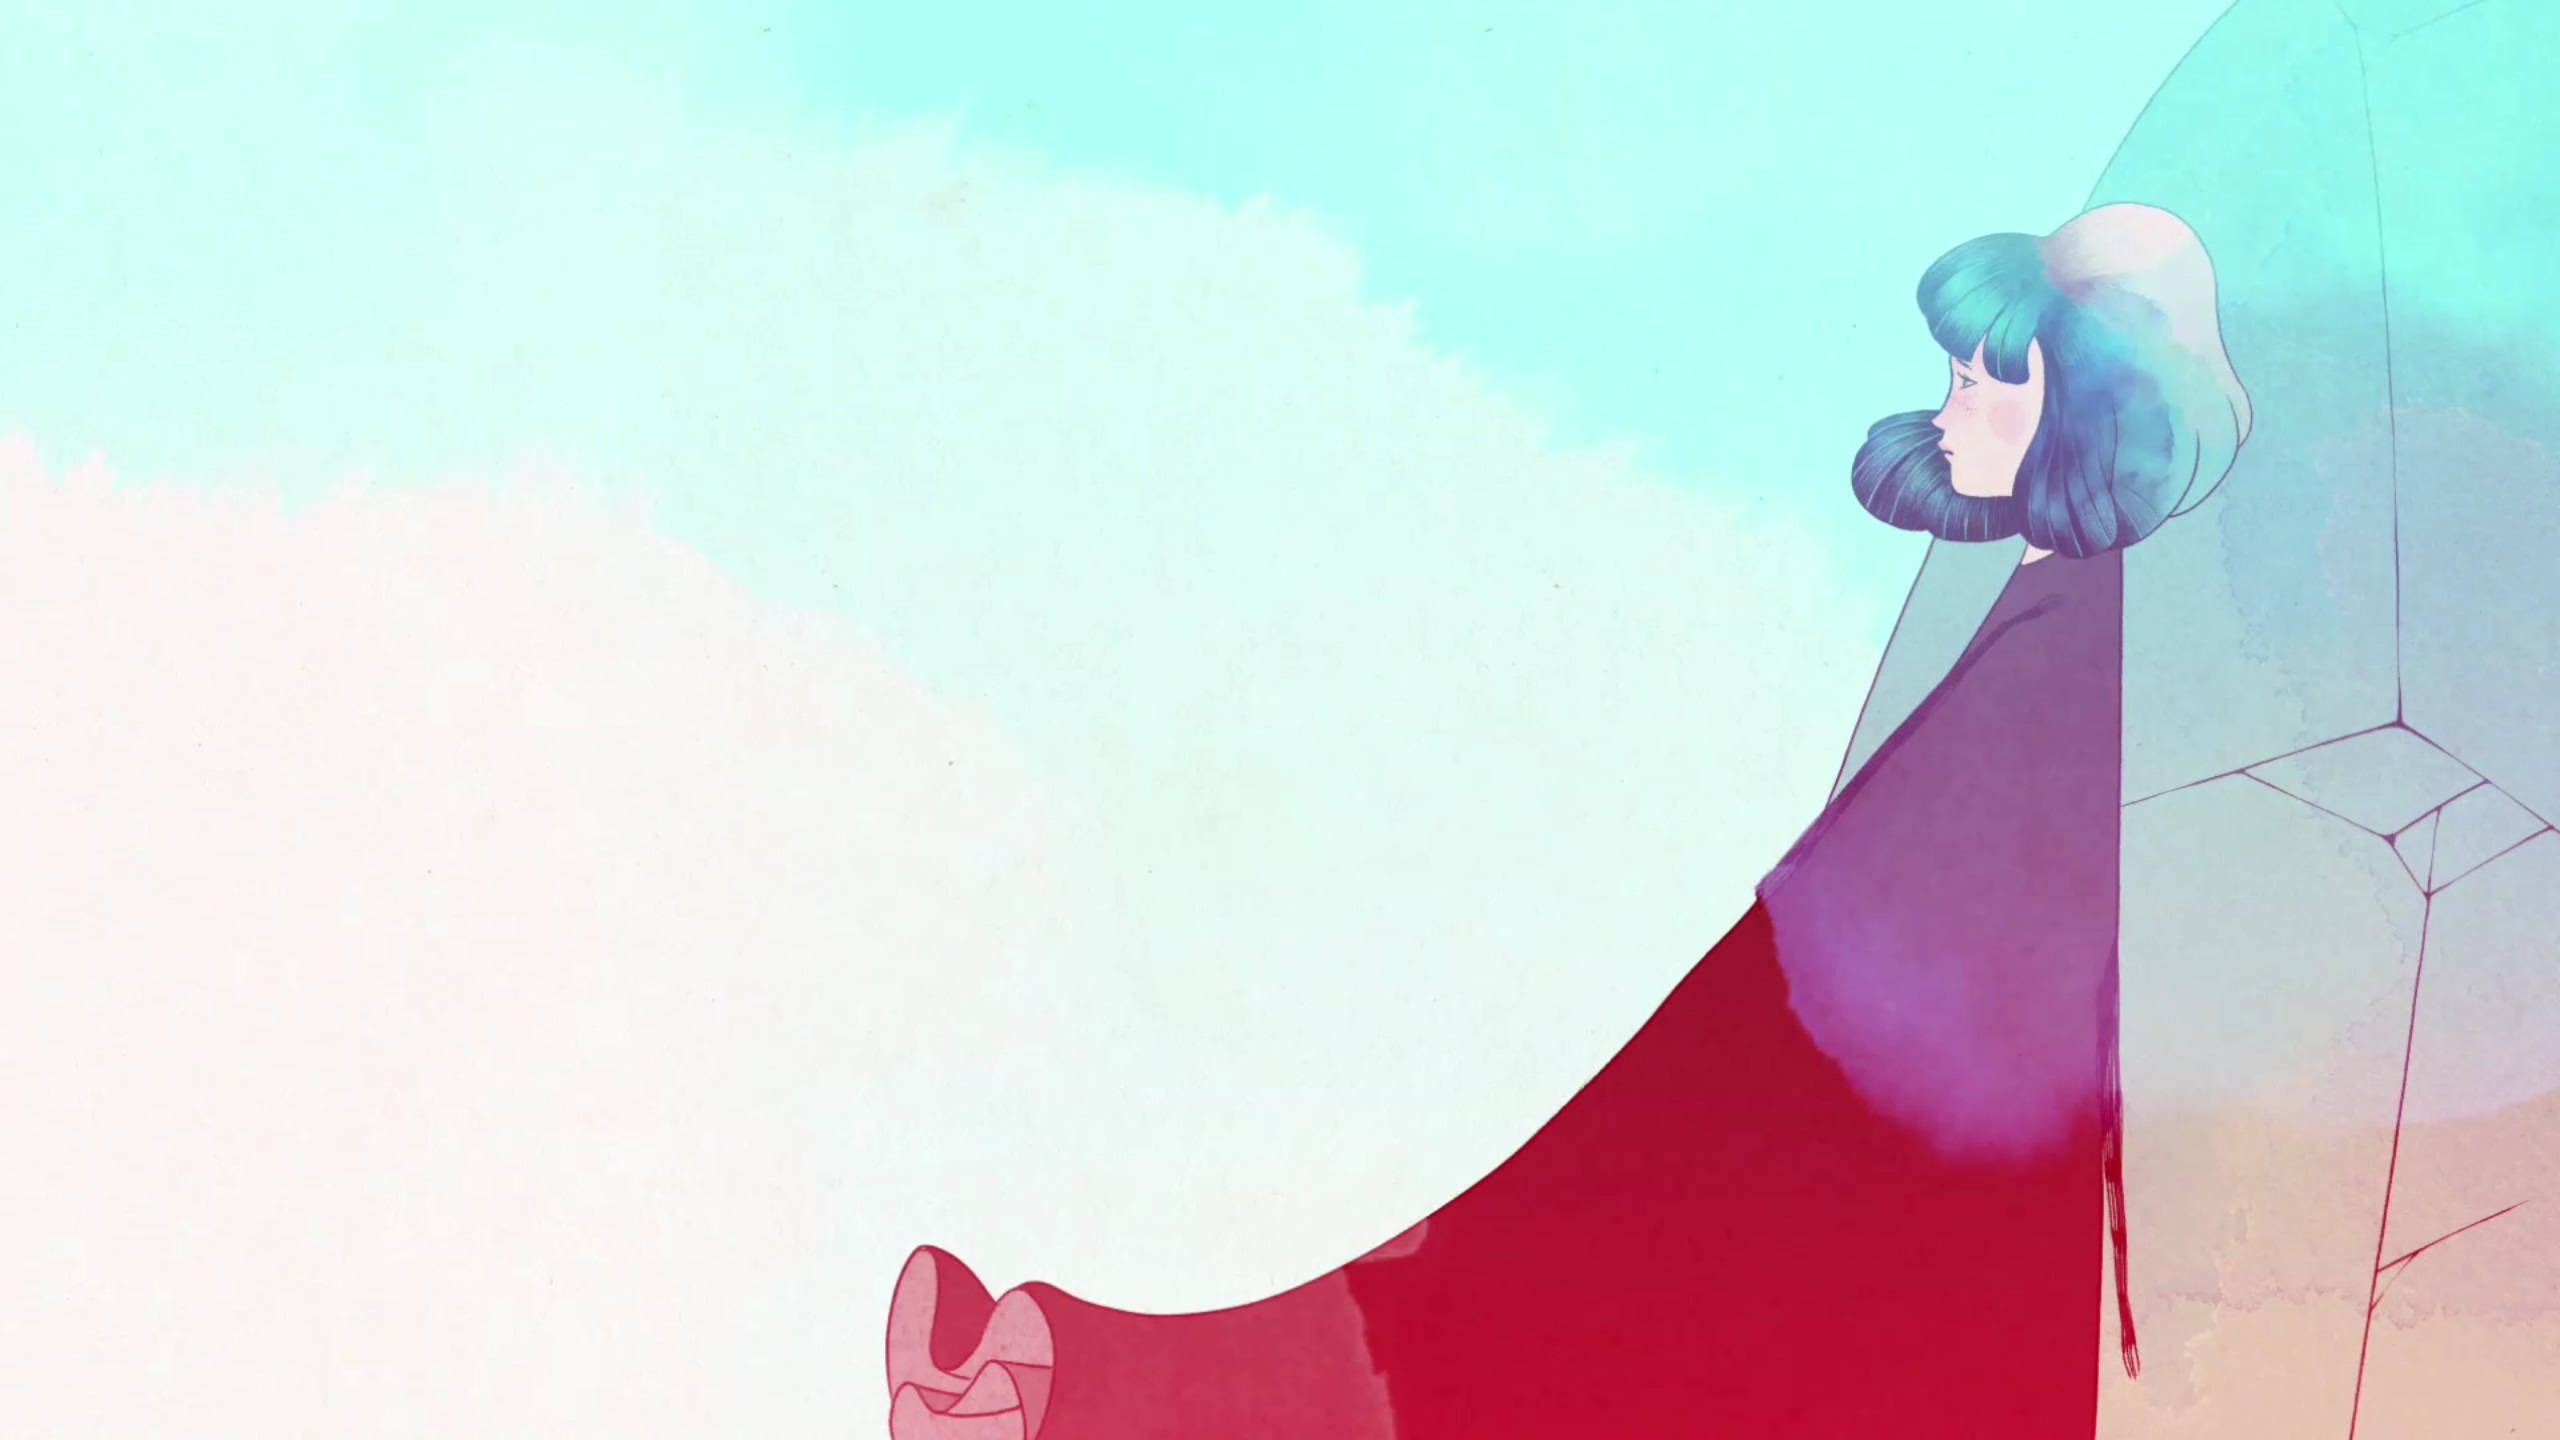 gris game background wallpaper 69735